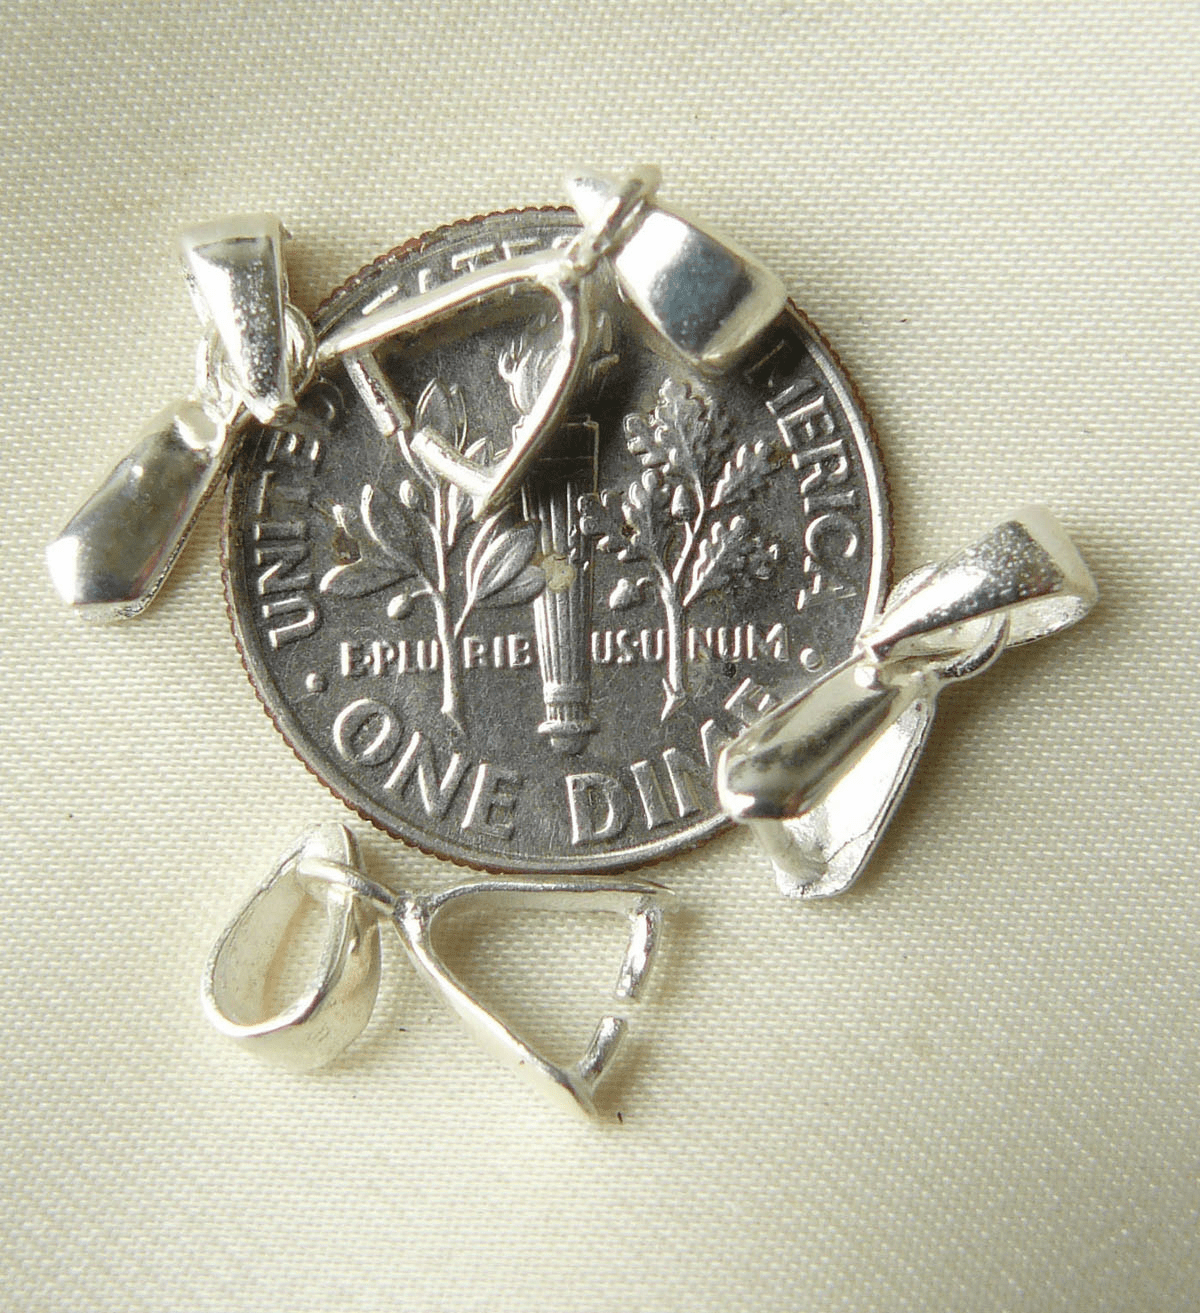 Pinch Bail with it own bail Sterling silver petite size 5 pieces SFBF034